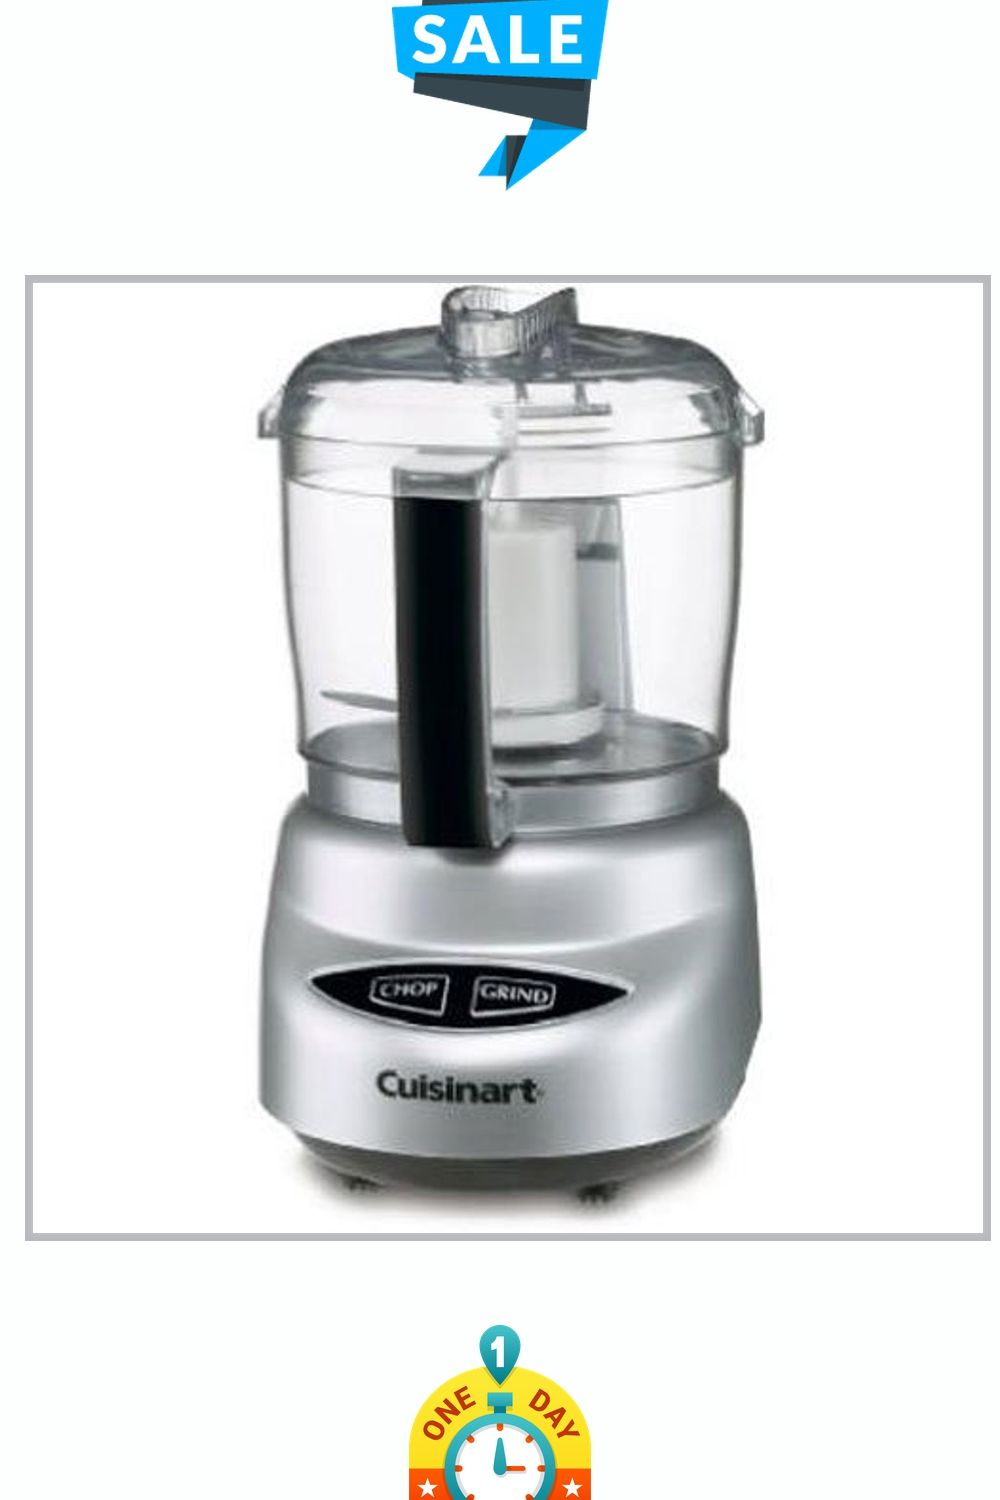 Top 15 Best Food Processor Labor Day Deals And Sales 2020 Labor Day Deal In 2020 Best Food Processor Food Processor Recipes Ninja Food Processor